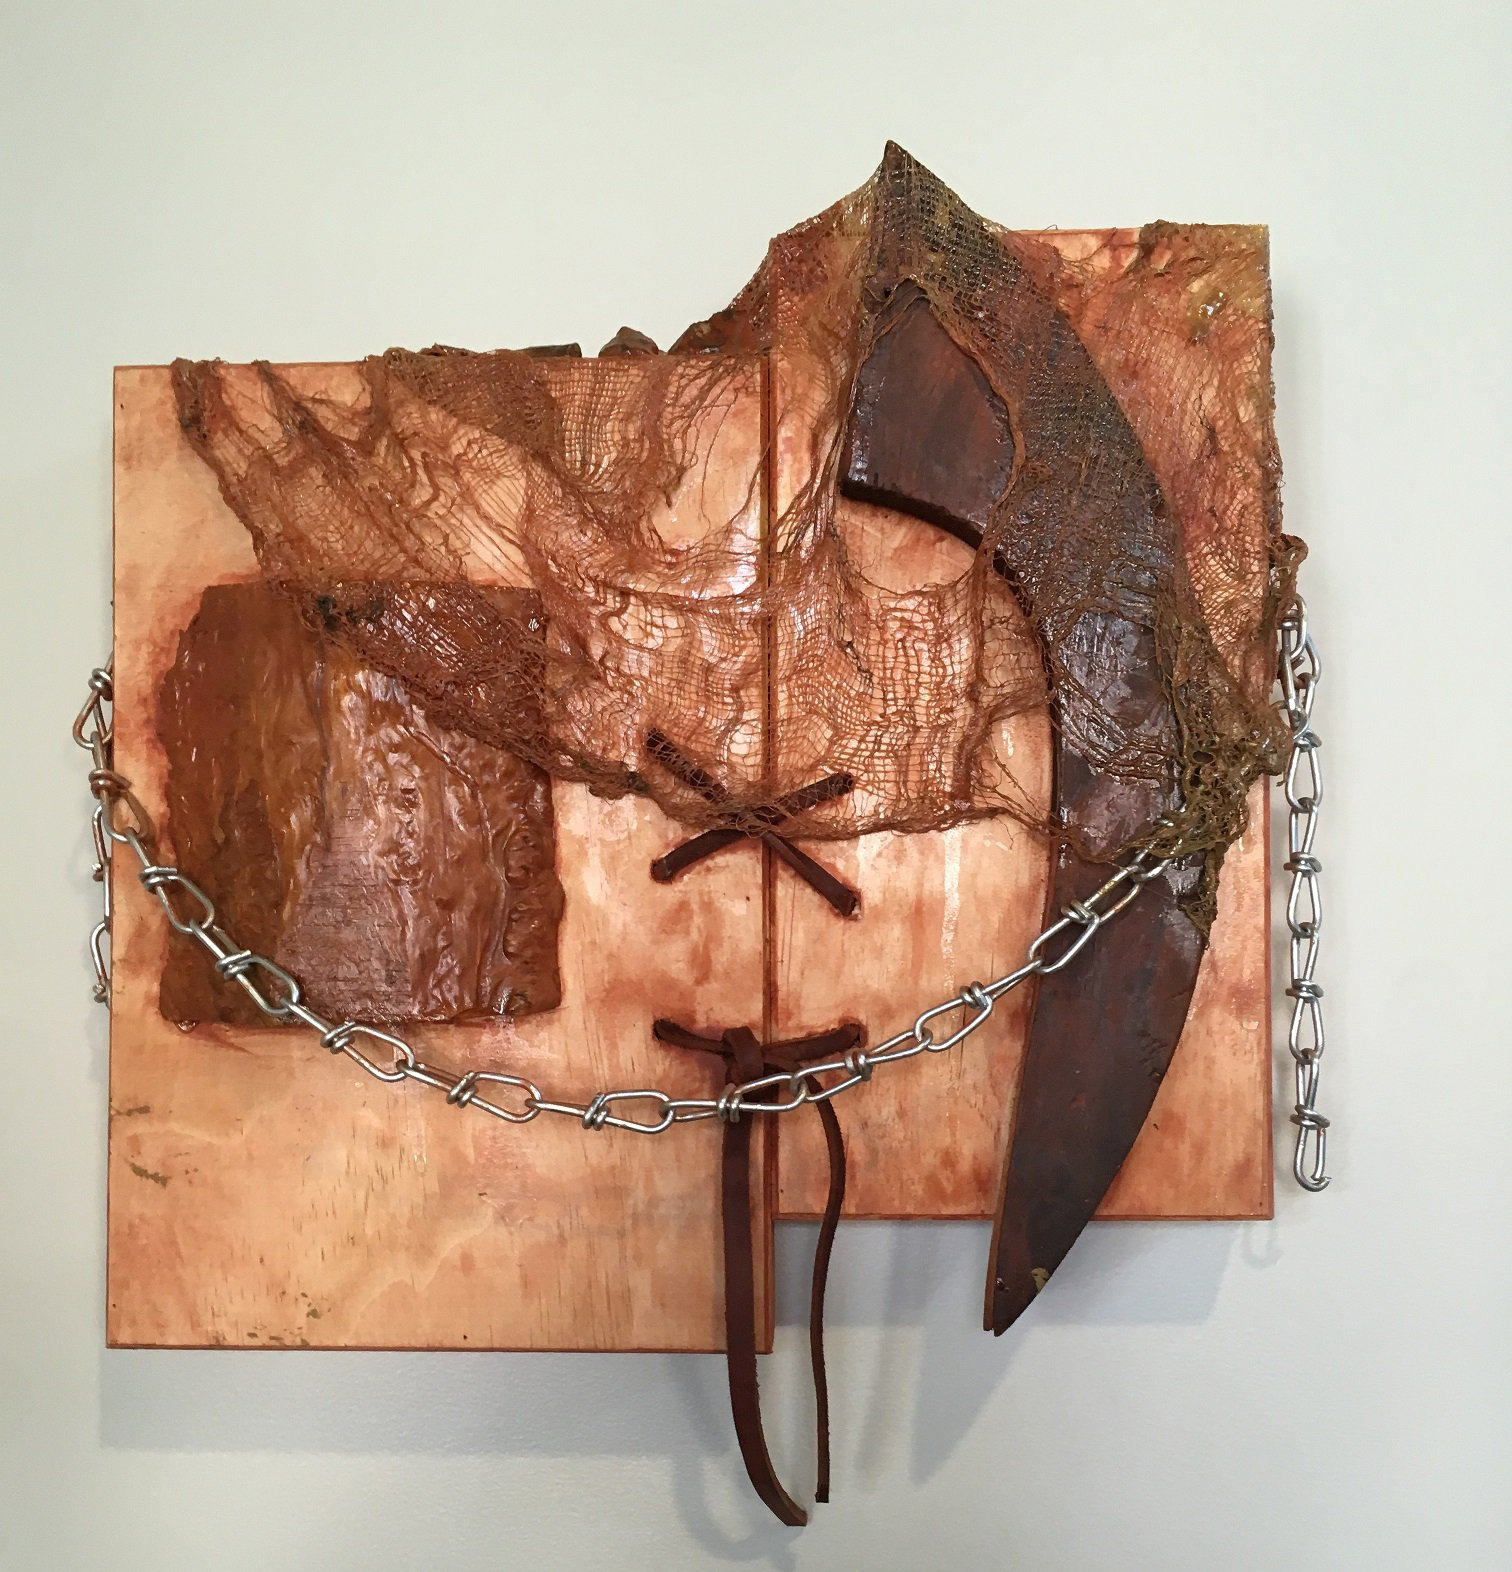 Soni-Wright_Mending the Divide, mixed media on wood